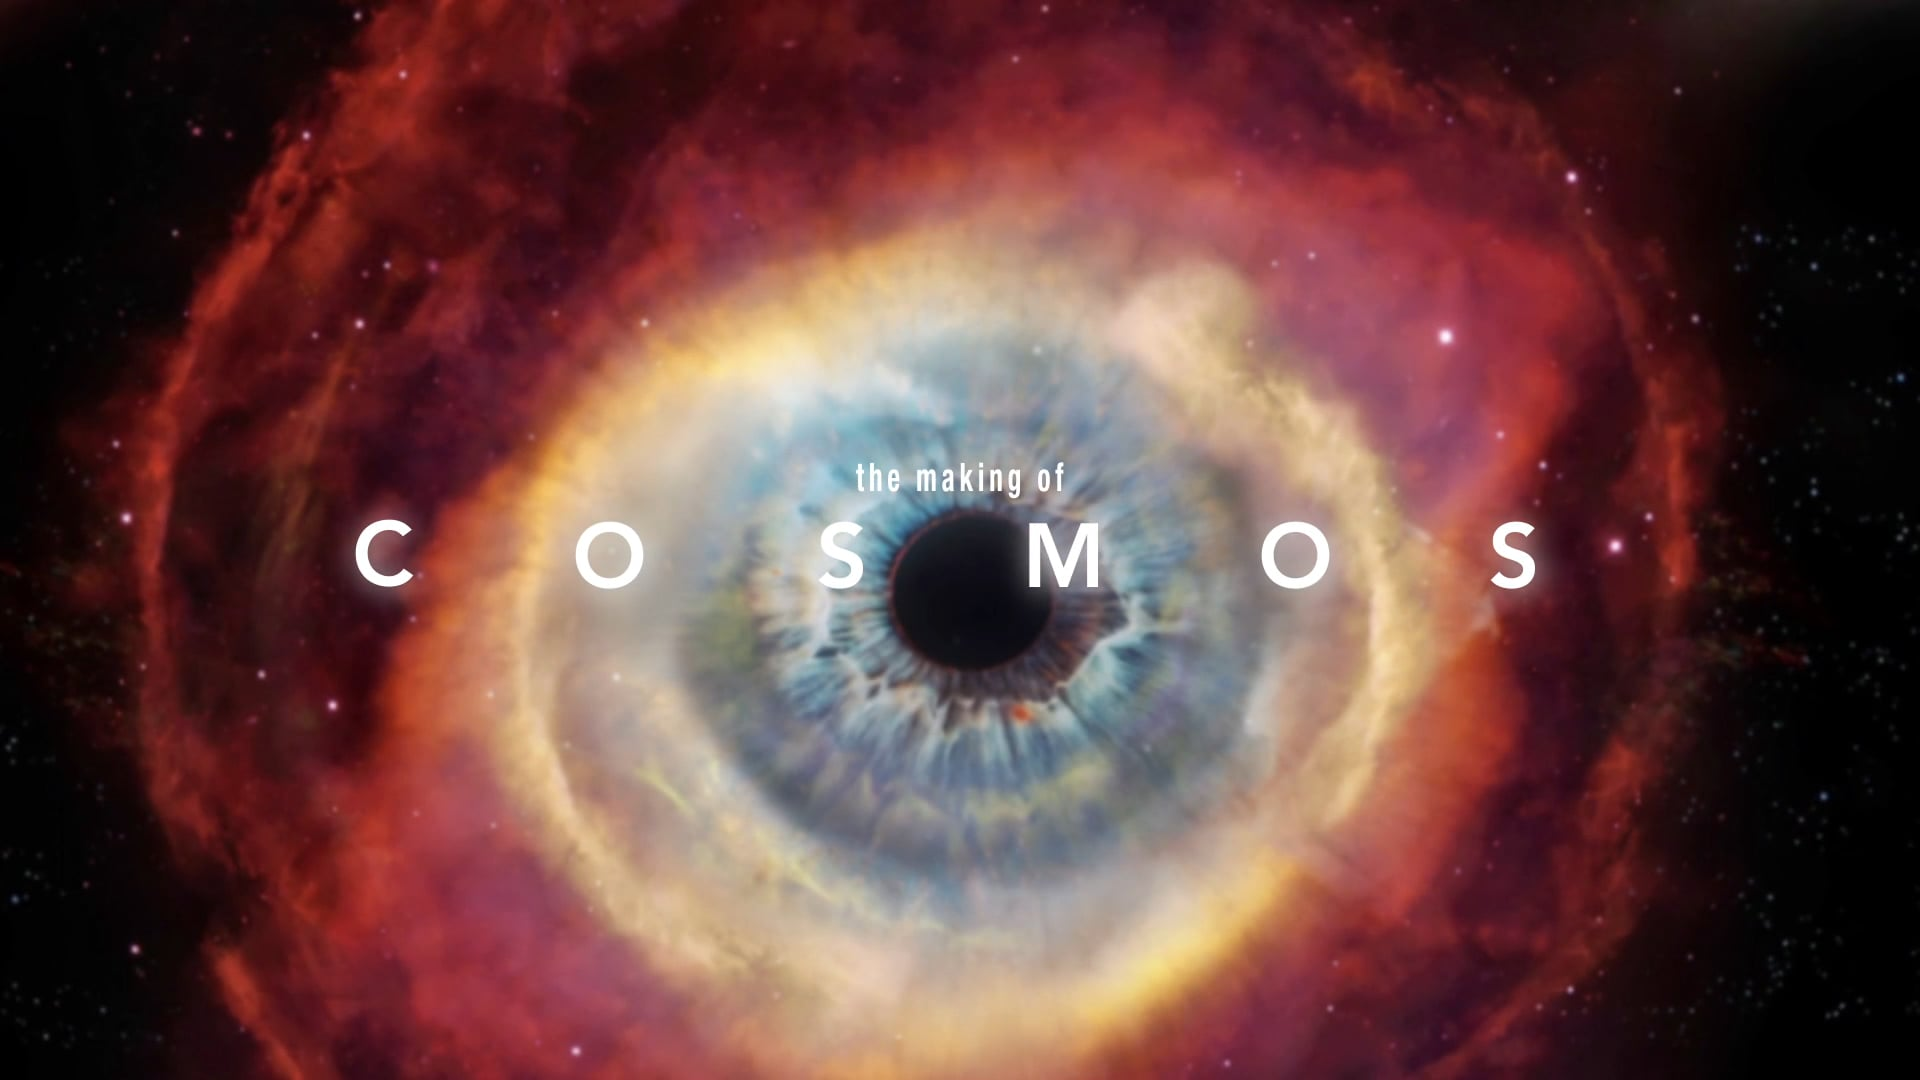 Making of Cosmos